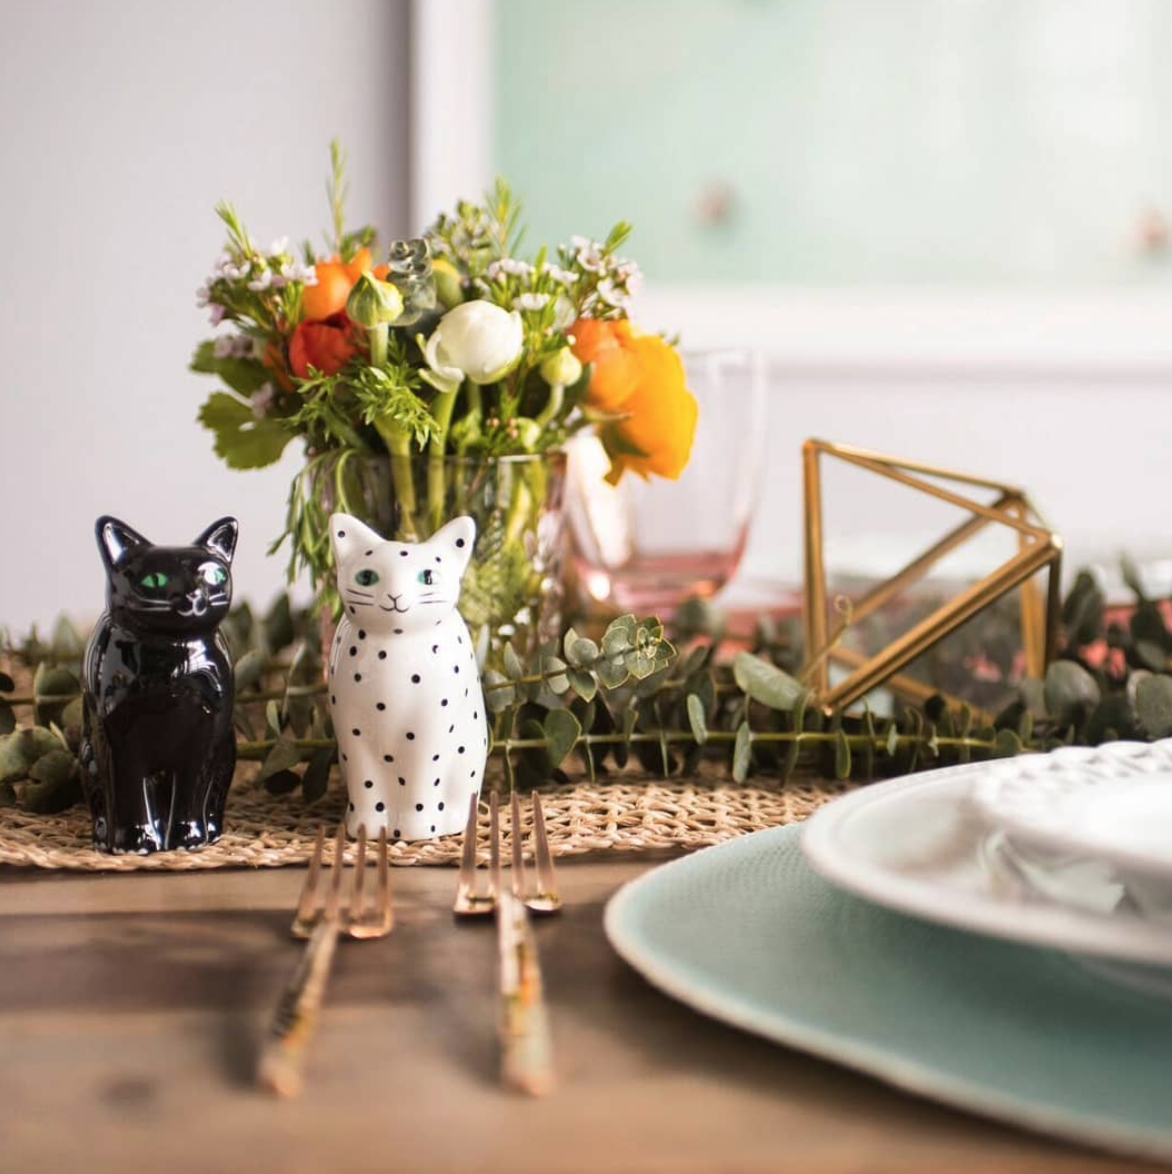 Photo of cute cat-shaped salt and pepper shakers on a decorated table.